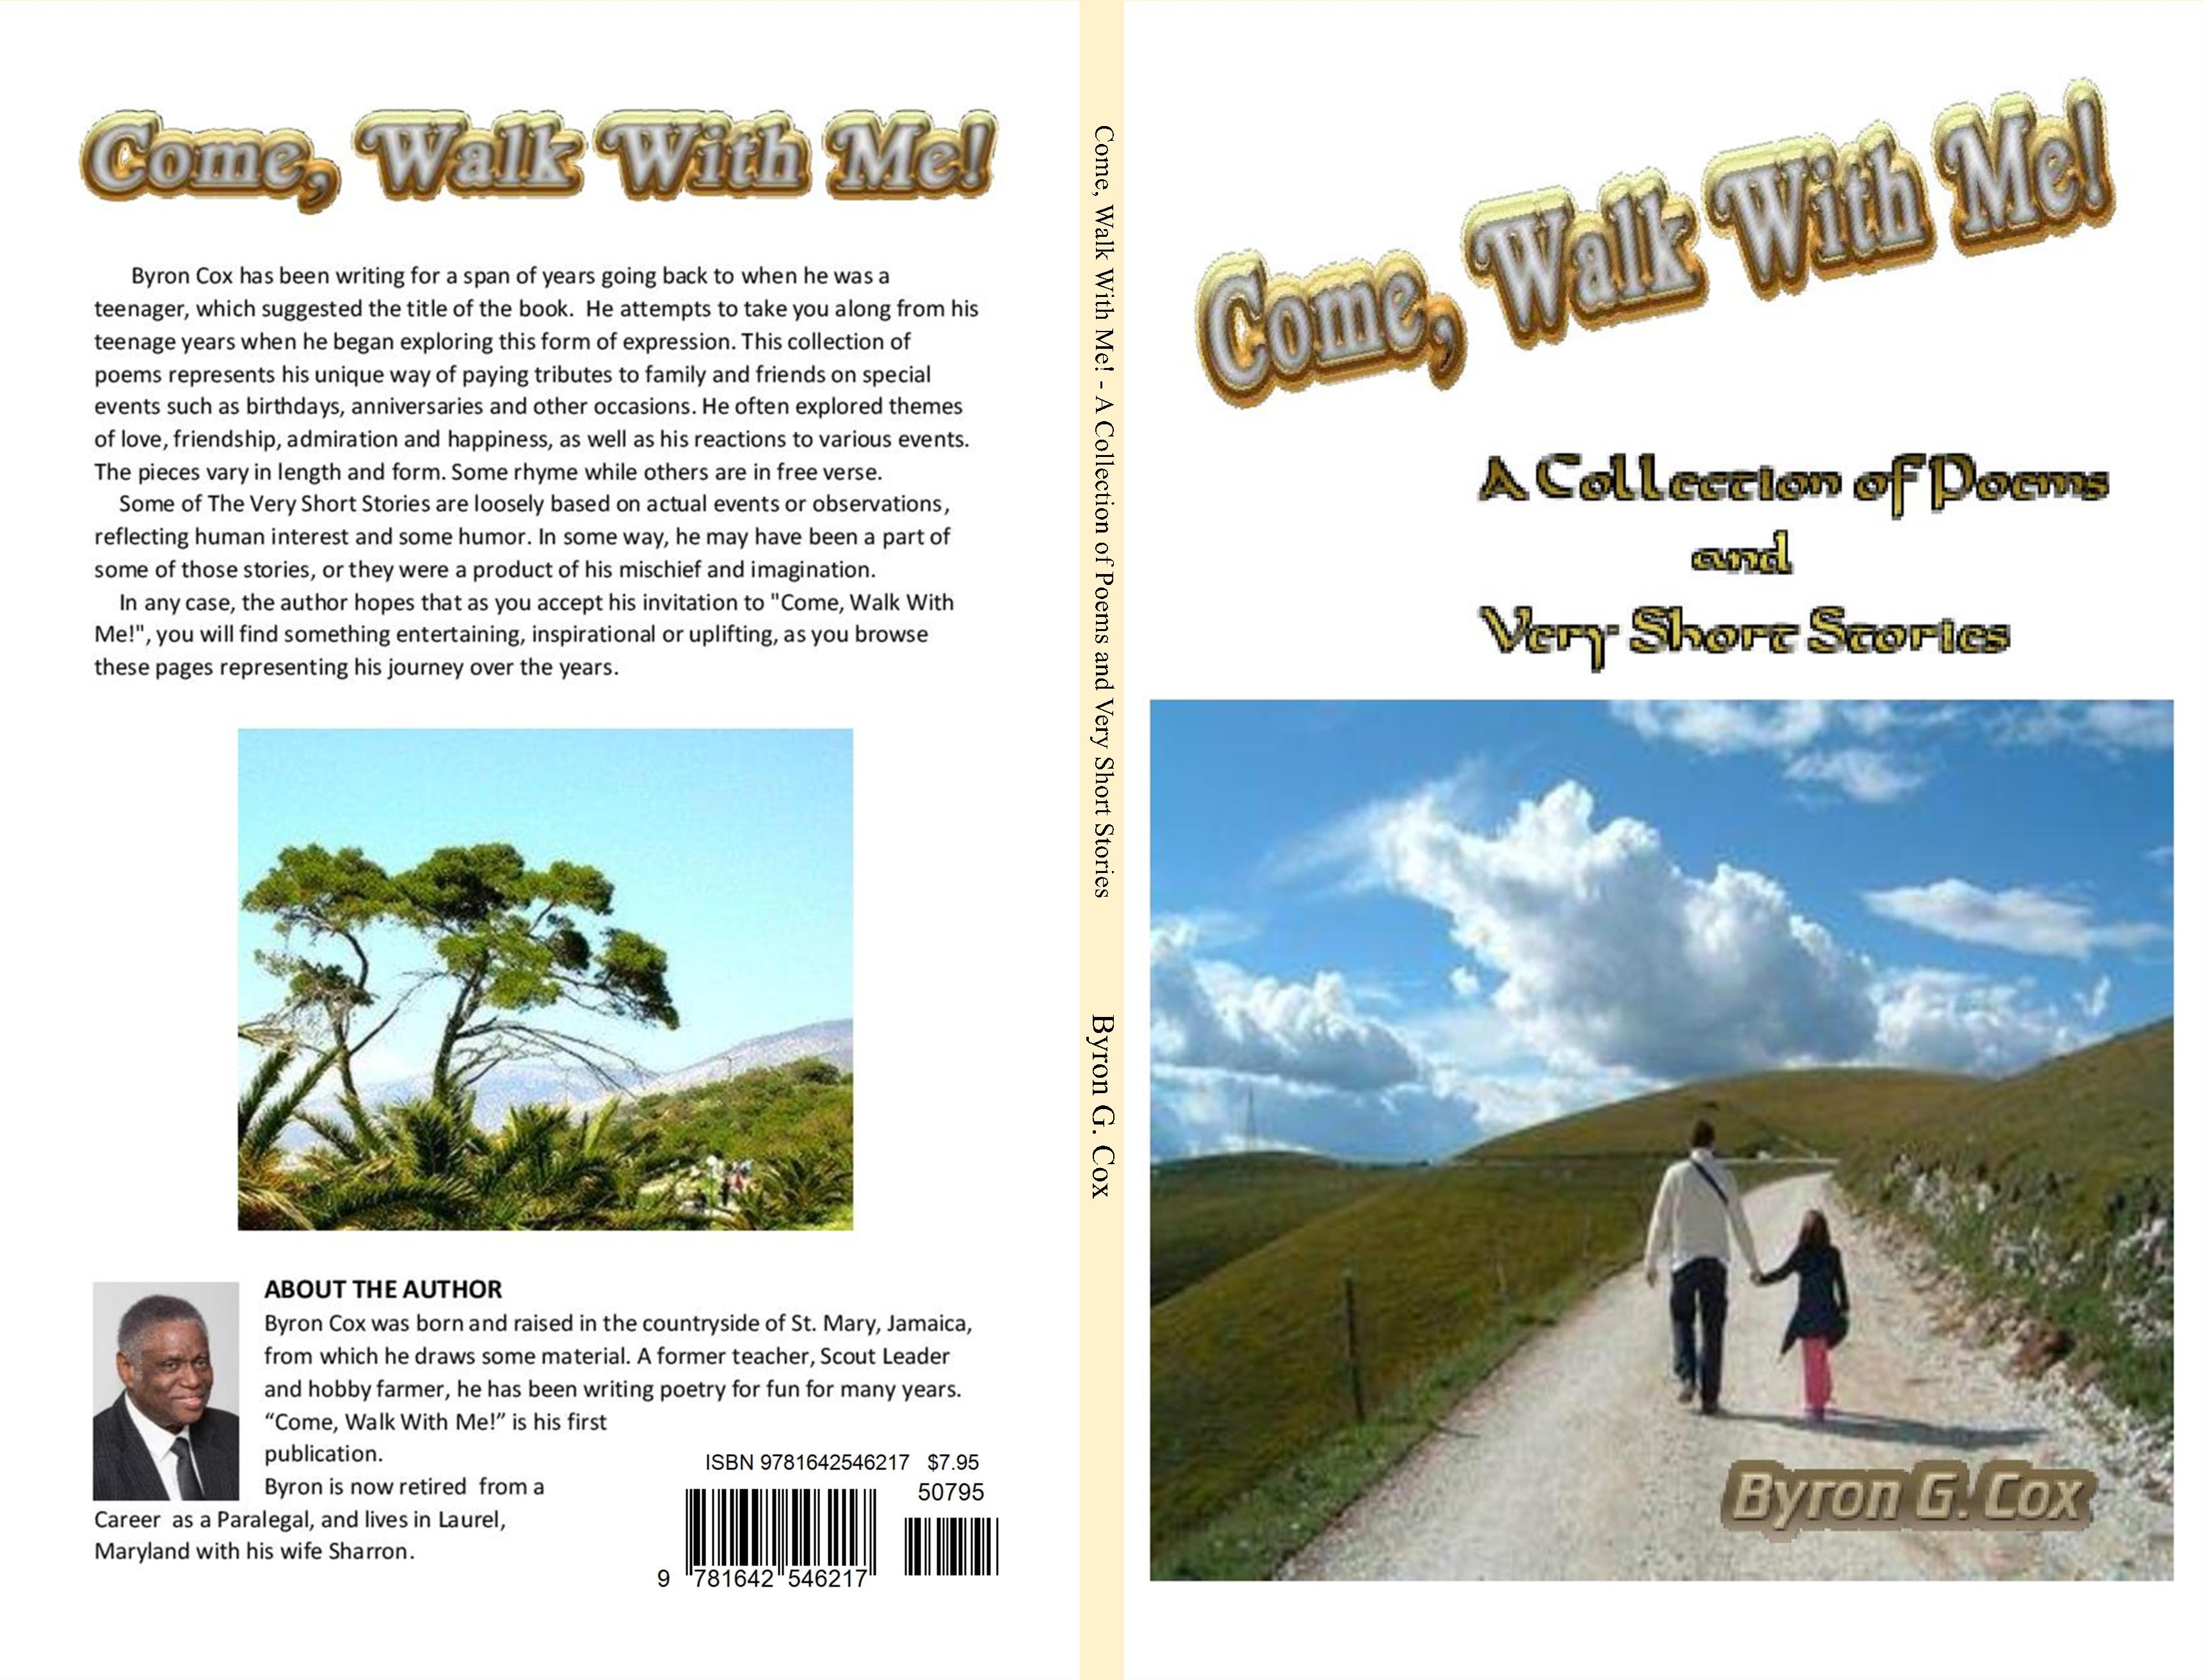 Come, Walk With Me! - A Collection of Poems and Very Short Stories cover image